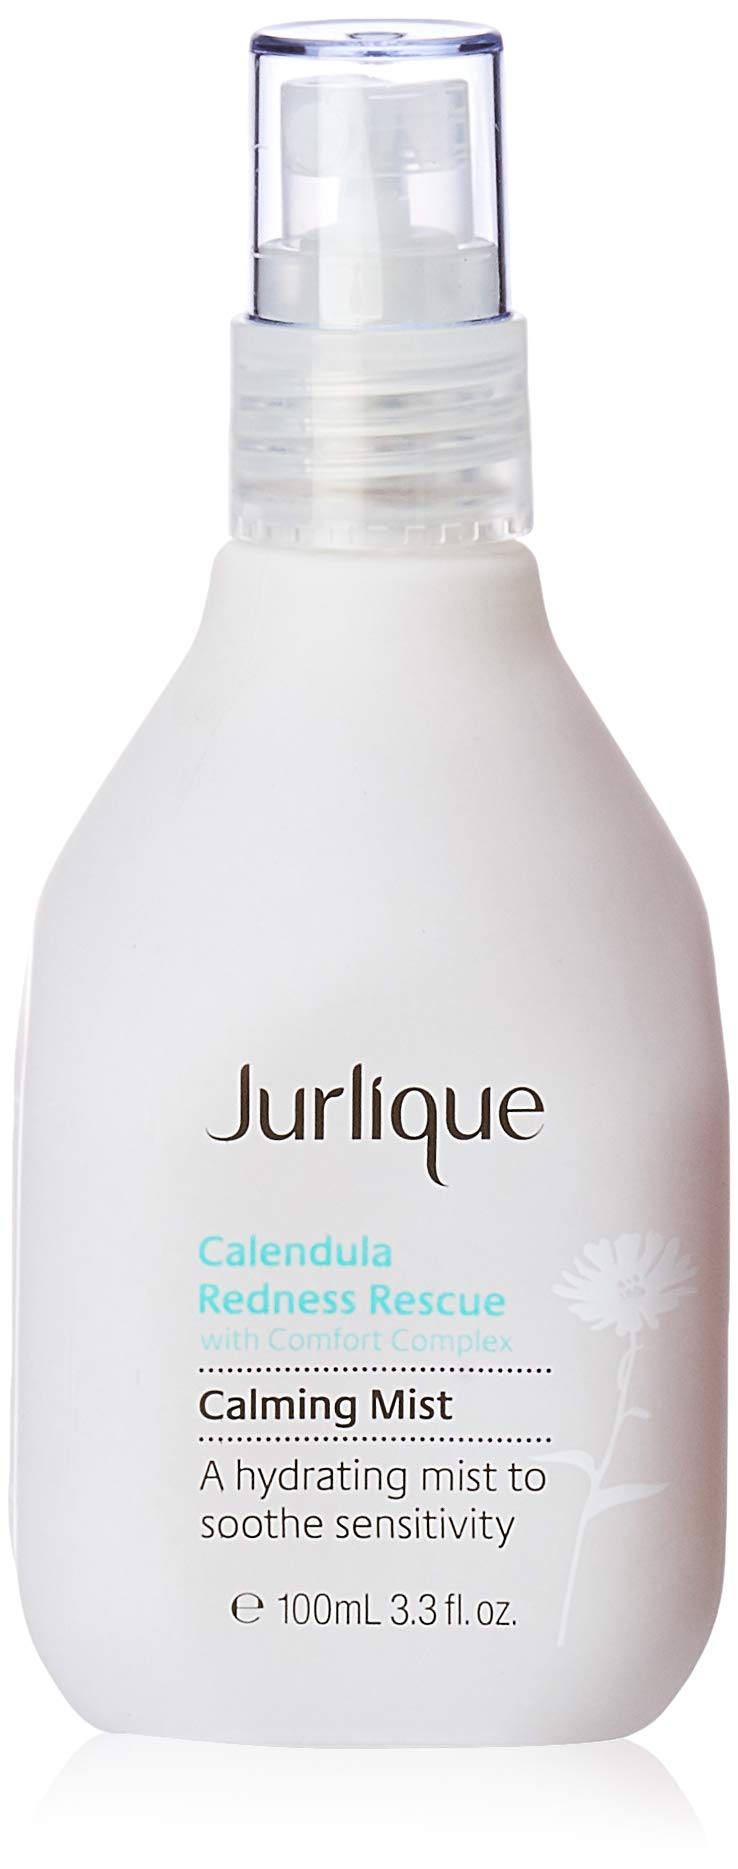 Jurlique Calendula Redness Rescue Calming Mist, 3.3 Fl Oz